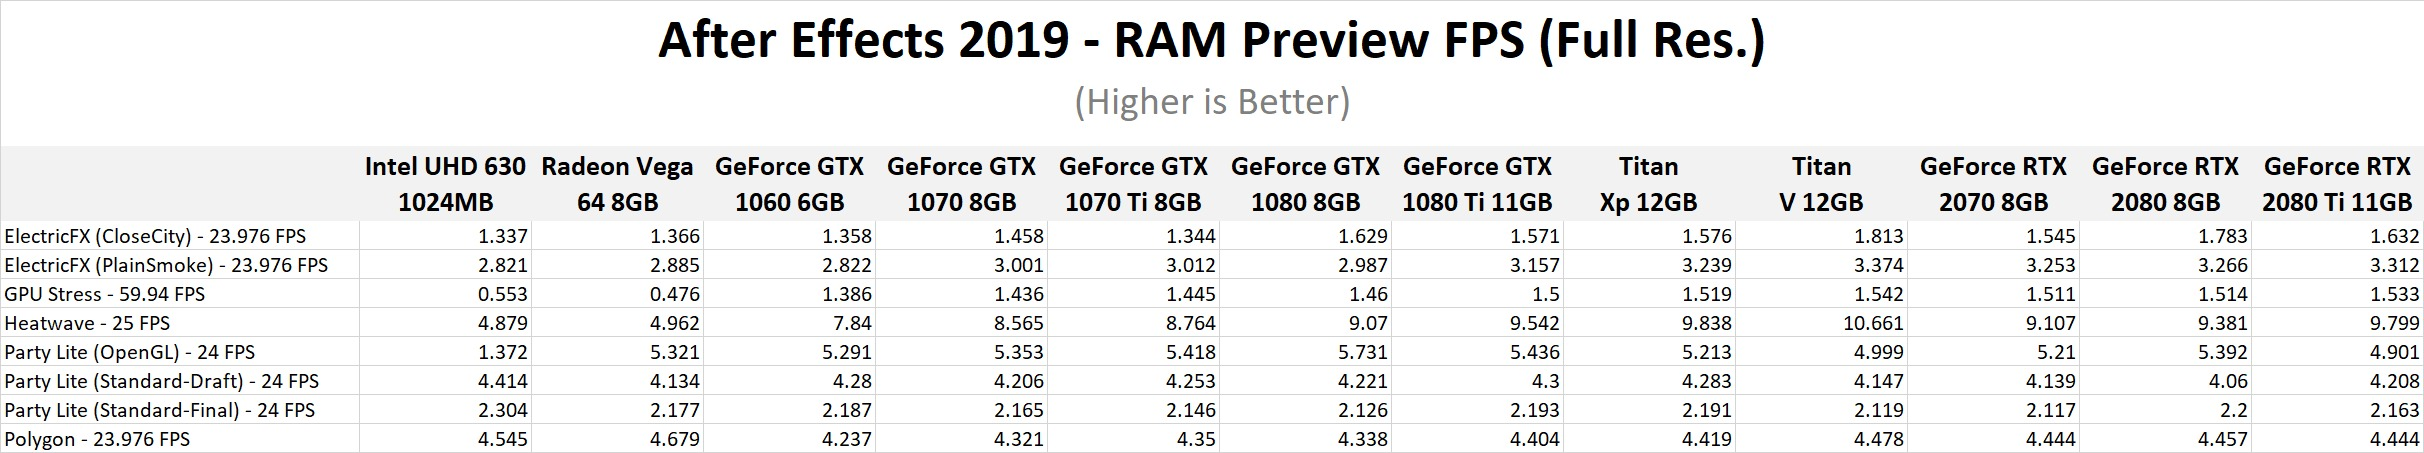 After Effects CC 2019: NVIDIA GeForce RTX Performance